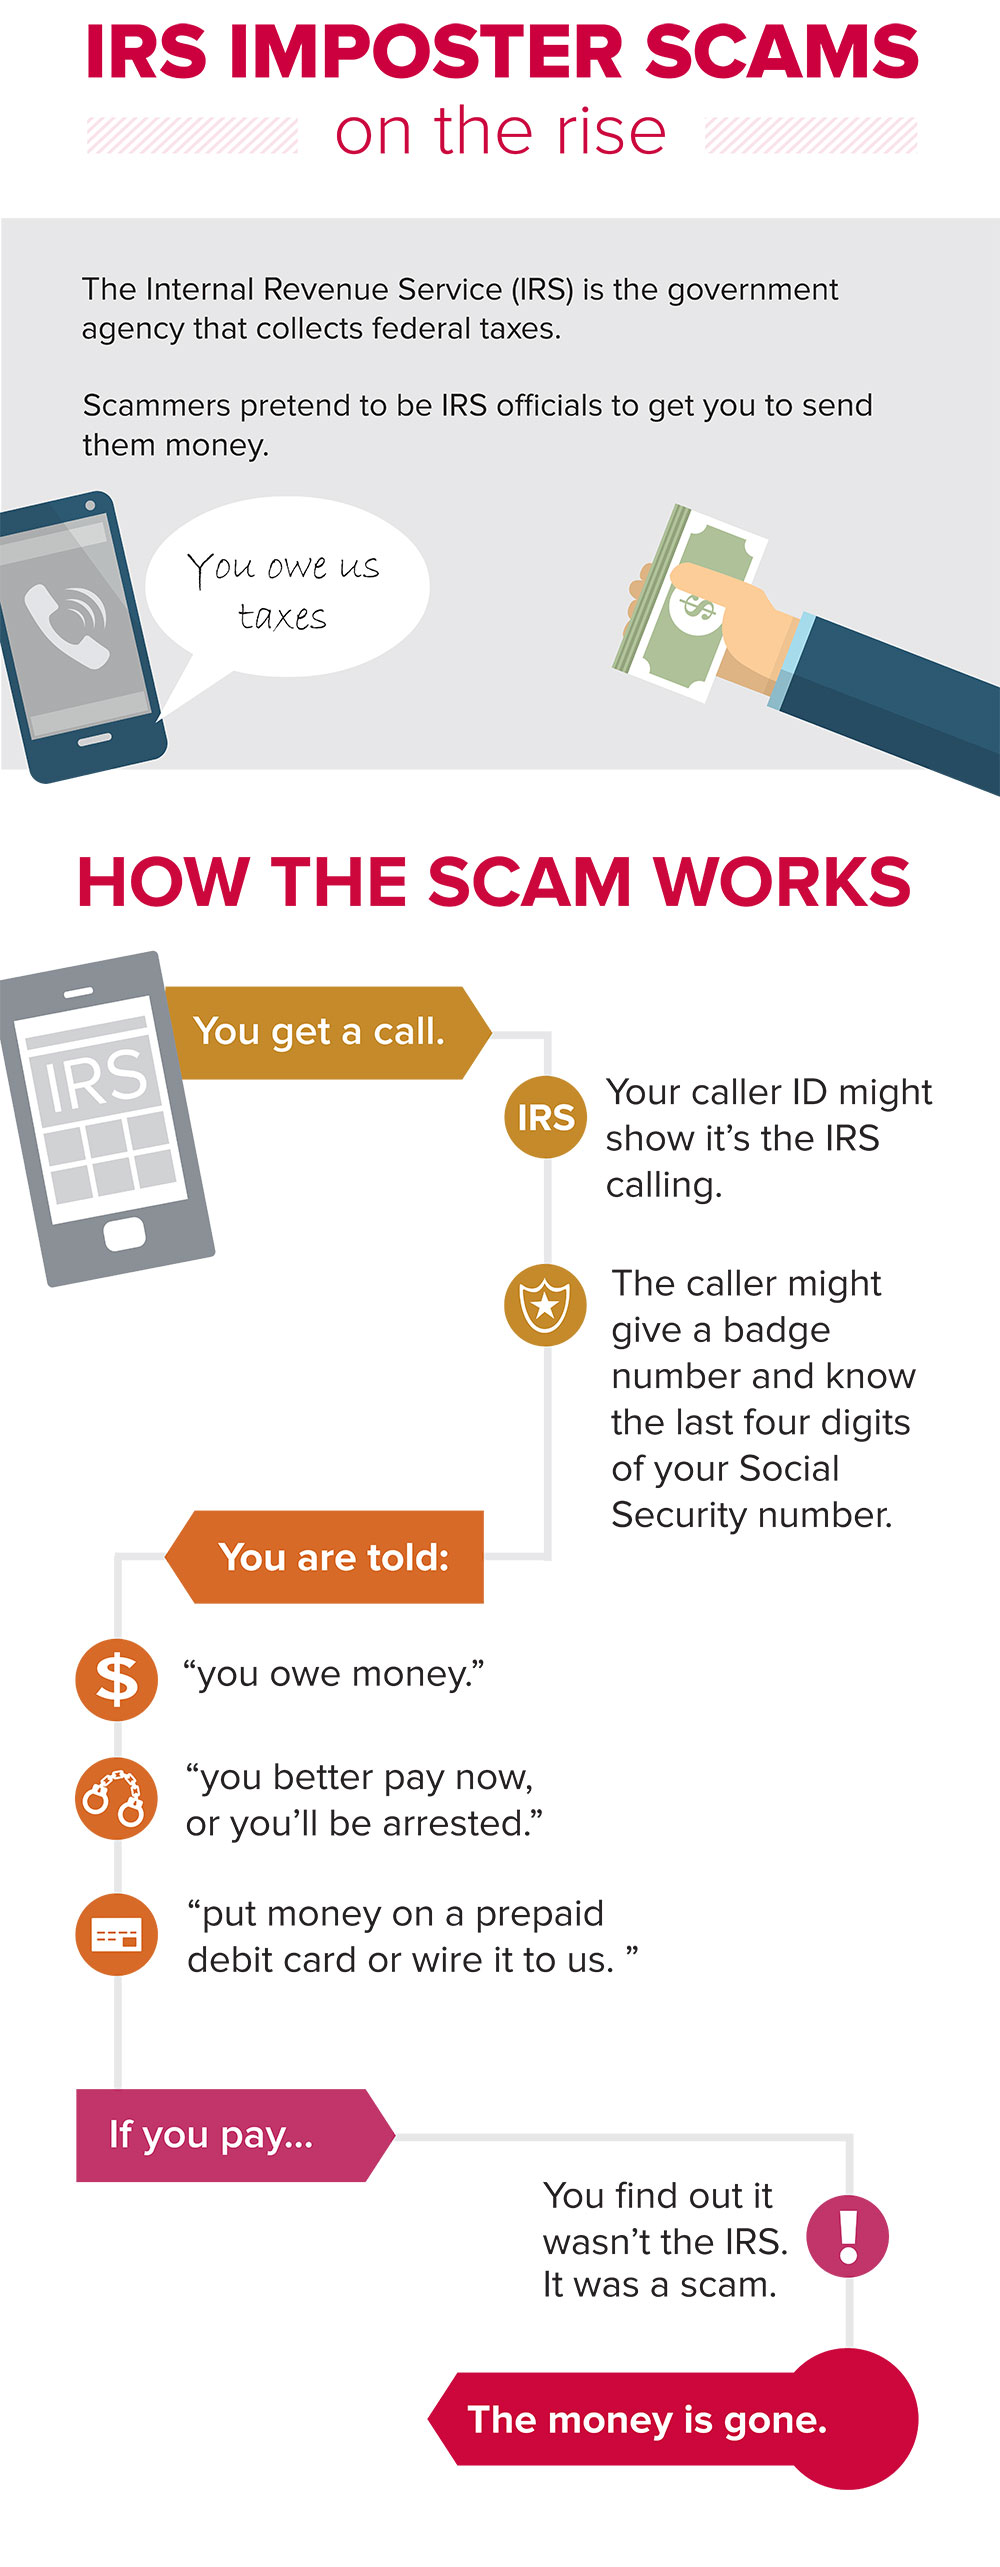 IRS imposter scams